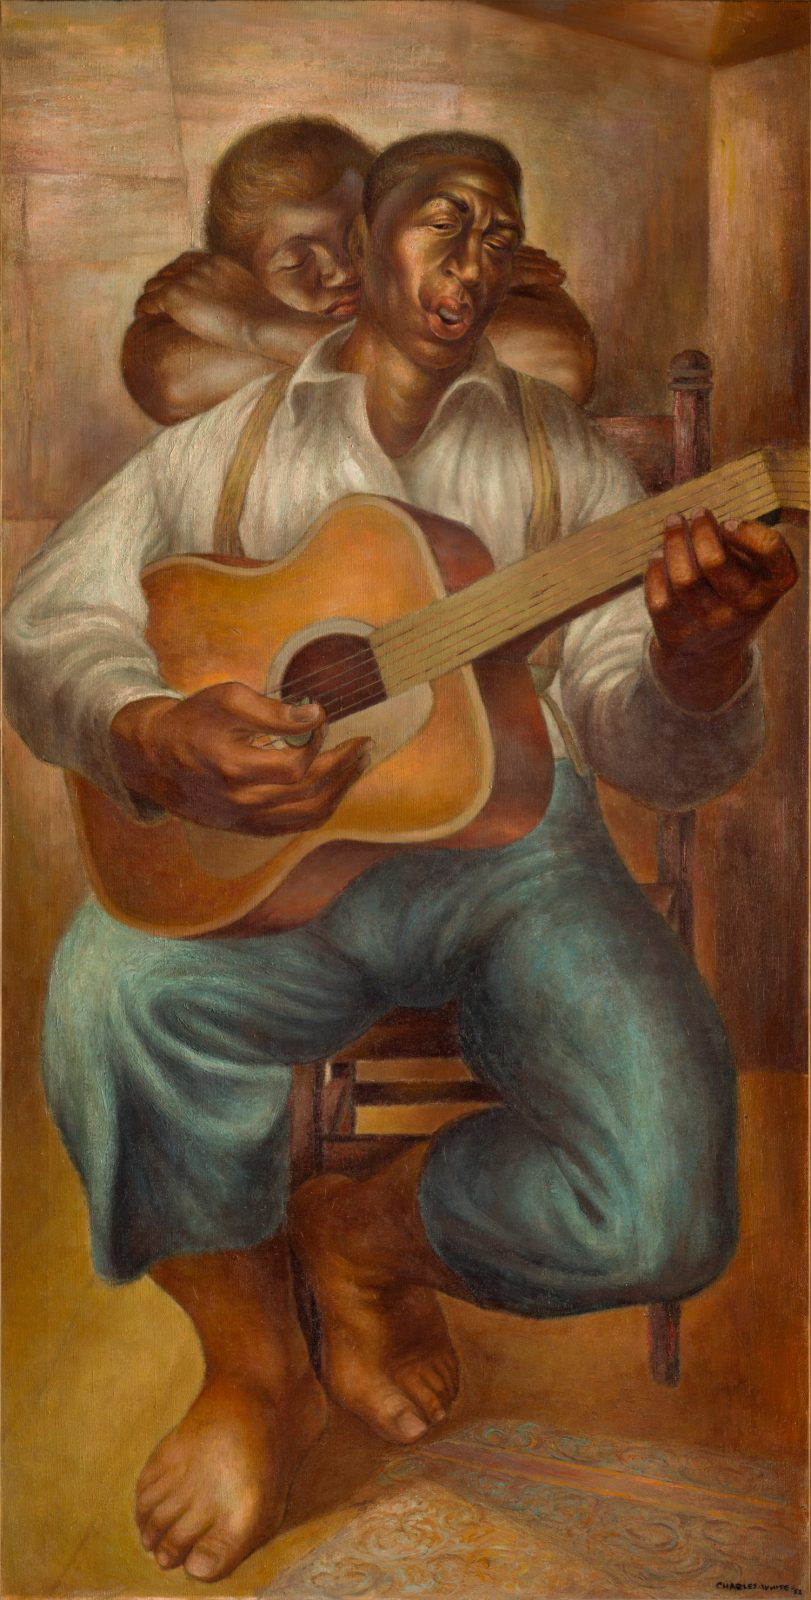 A seated man is performing at the guitar while a woman rests her head in her arms behind him